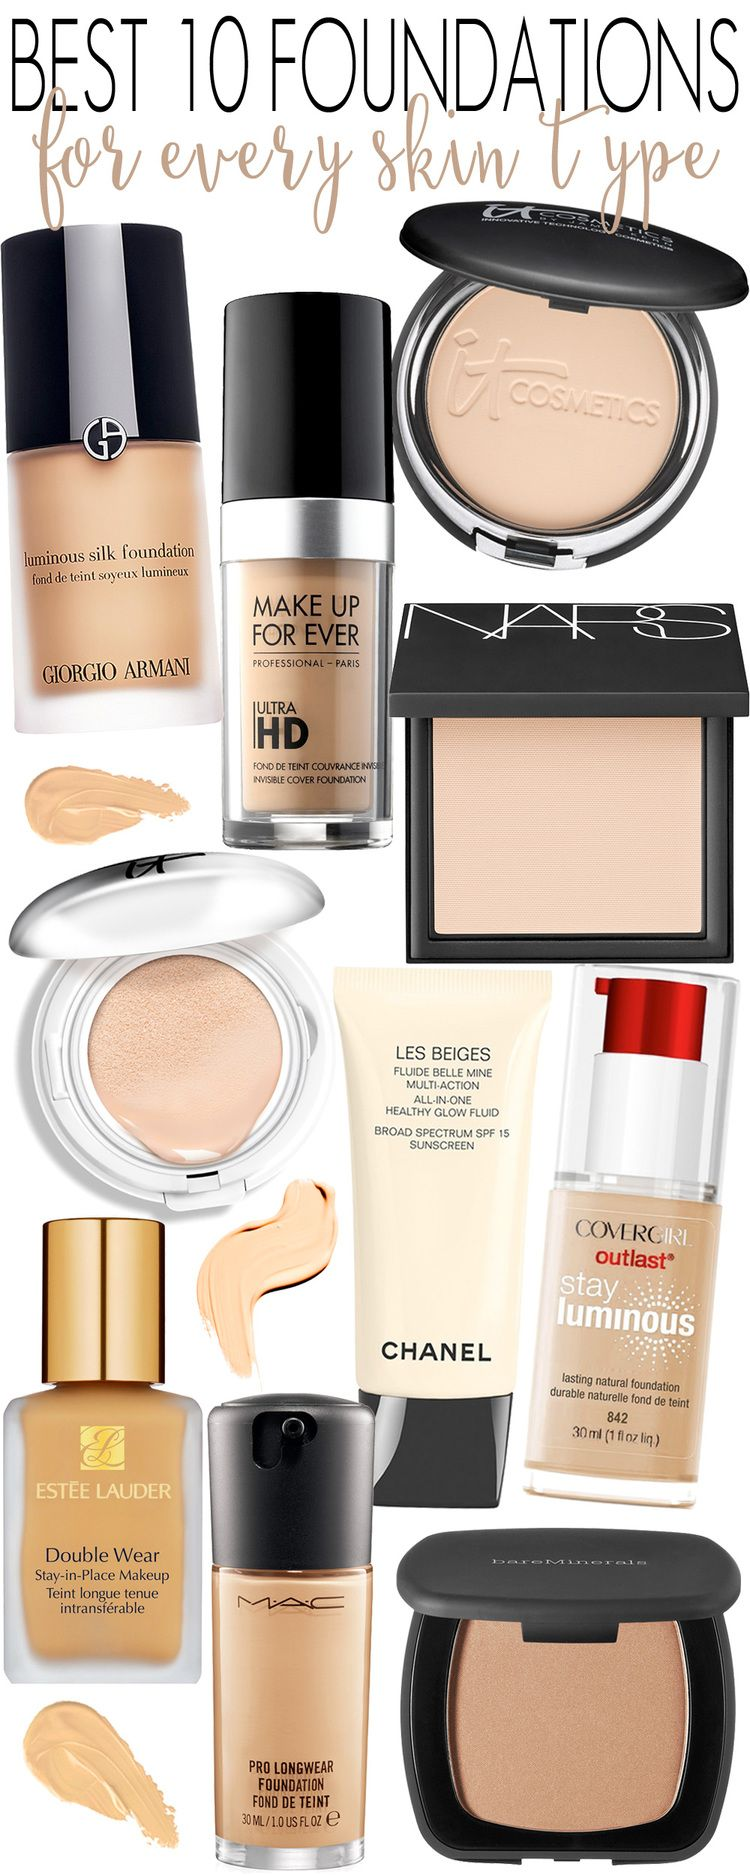 Top 10 Contouring + Highlighting Products with Tutorials. — Beautiful Makeup Search